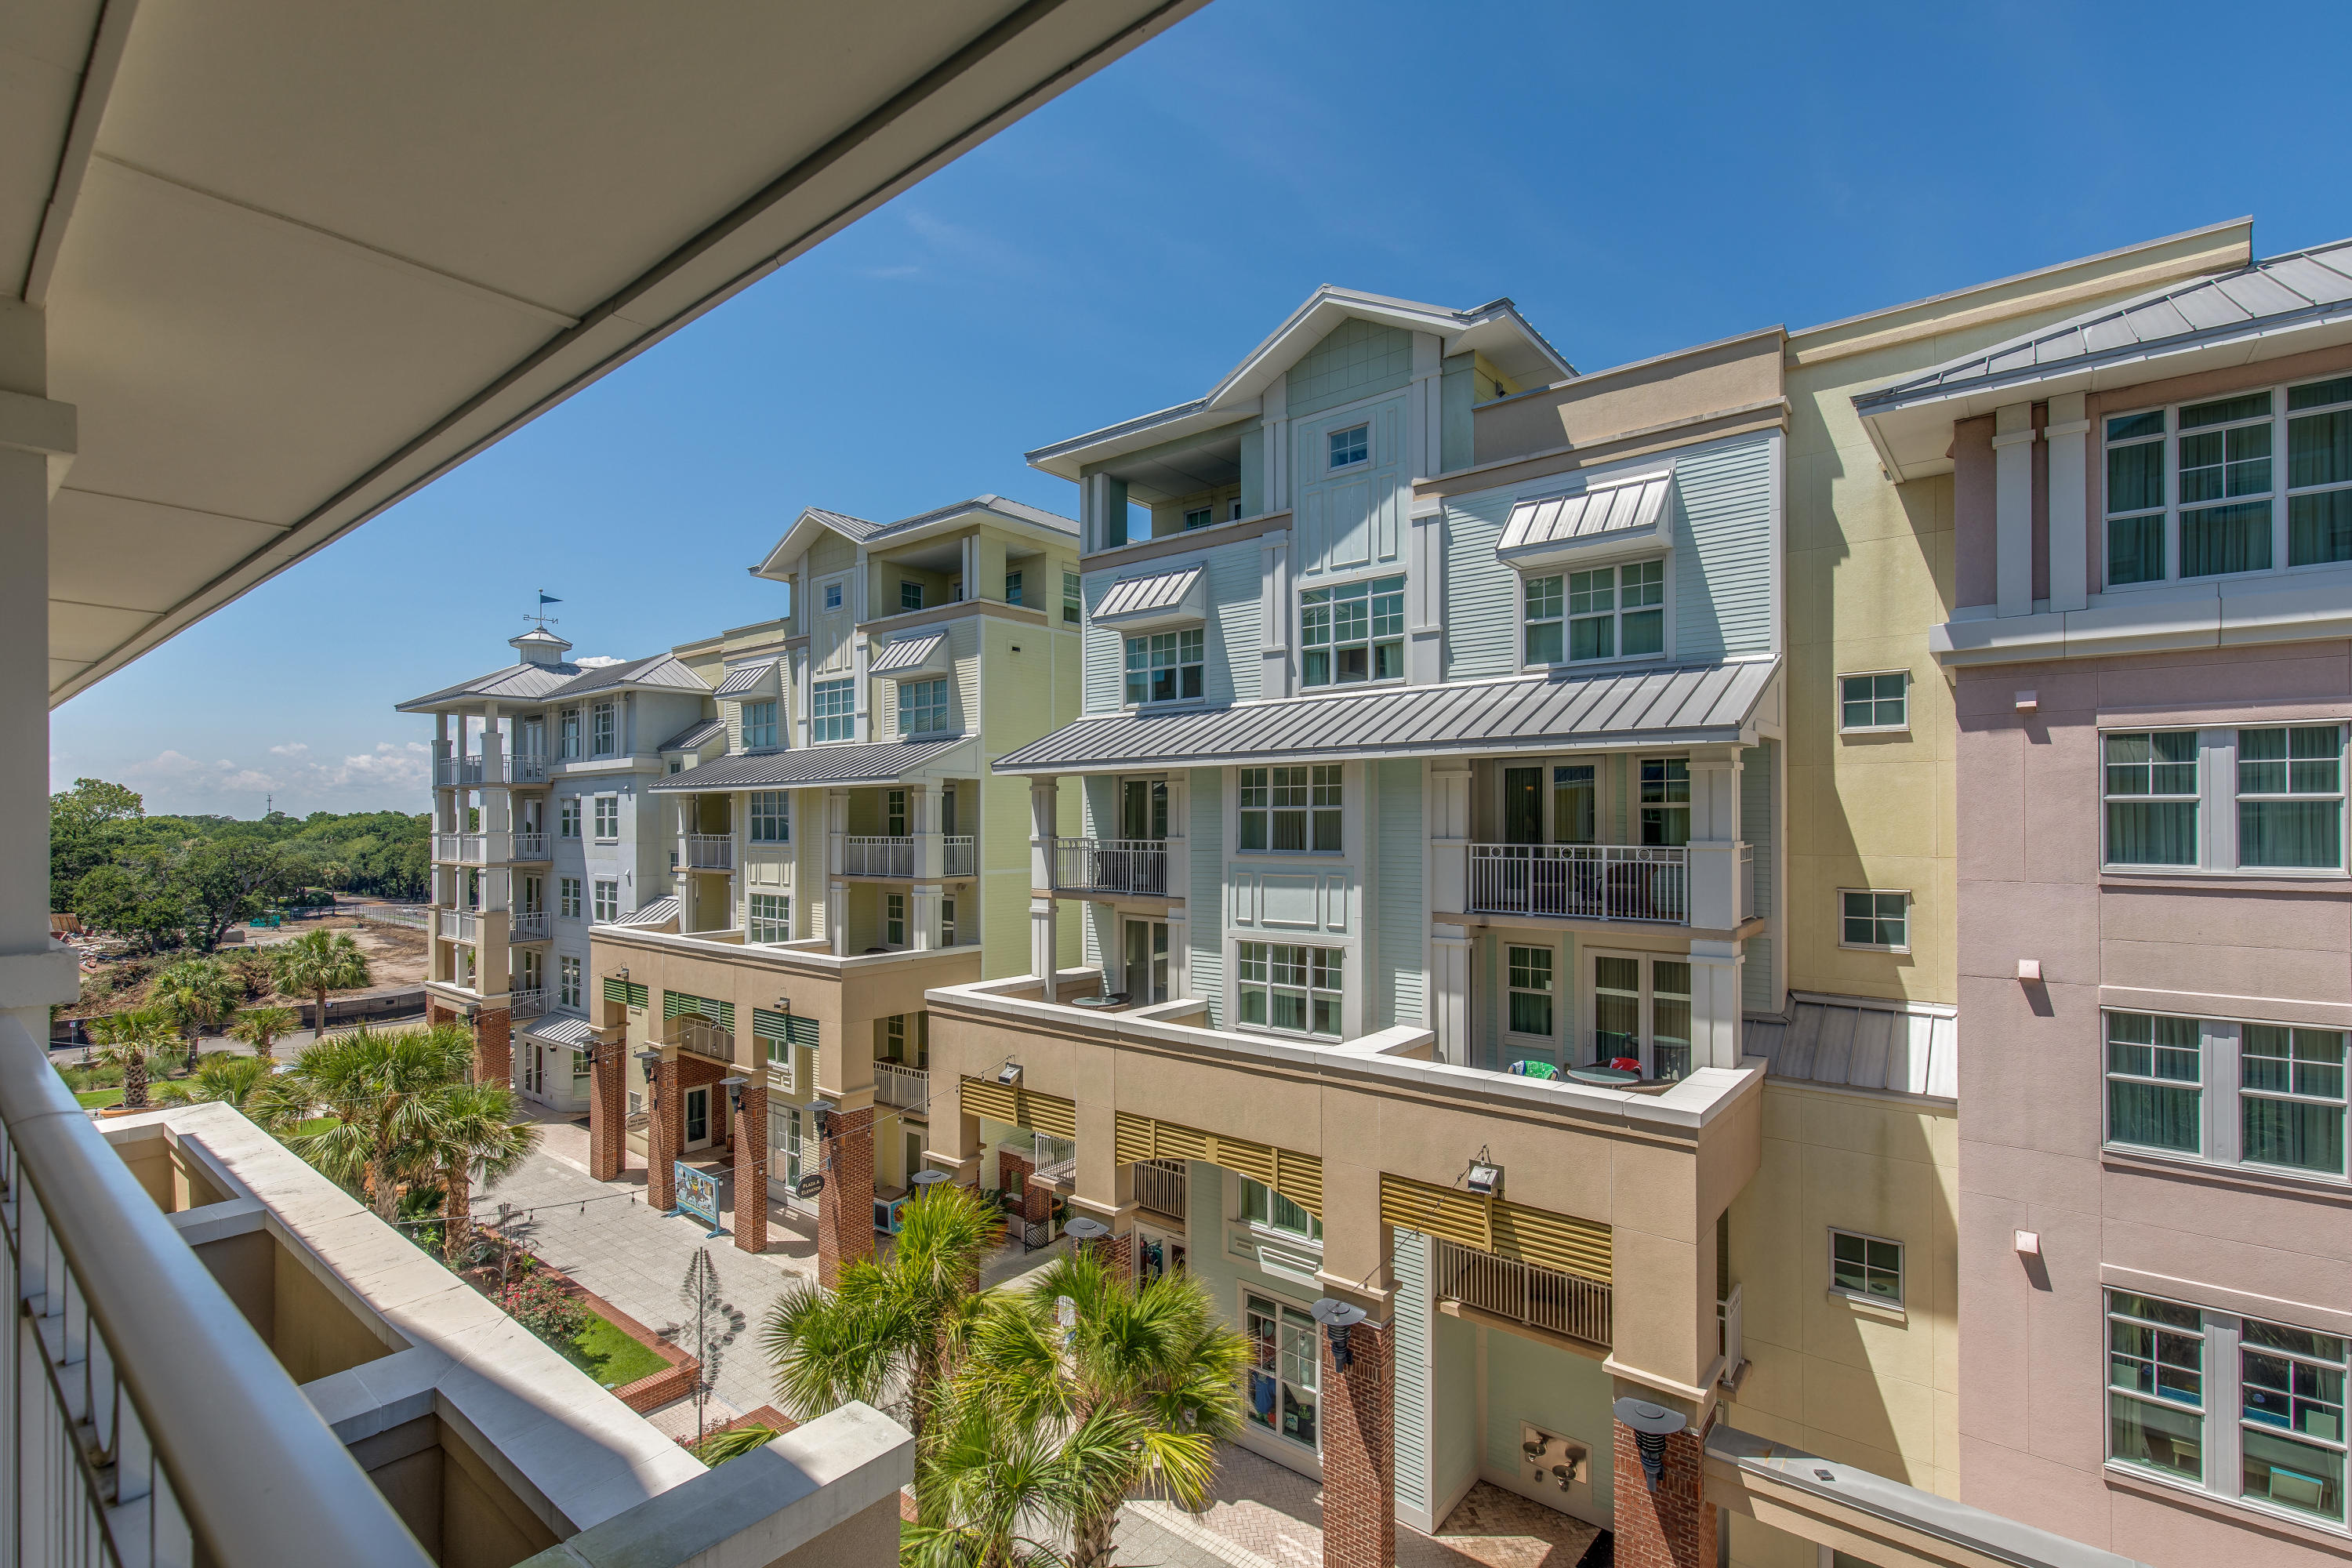 Wild Dunes Homes For Sale - B-412 Village At Wild Dunes, Isle of Palms, SC - 0